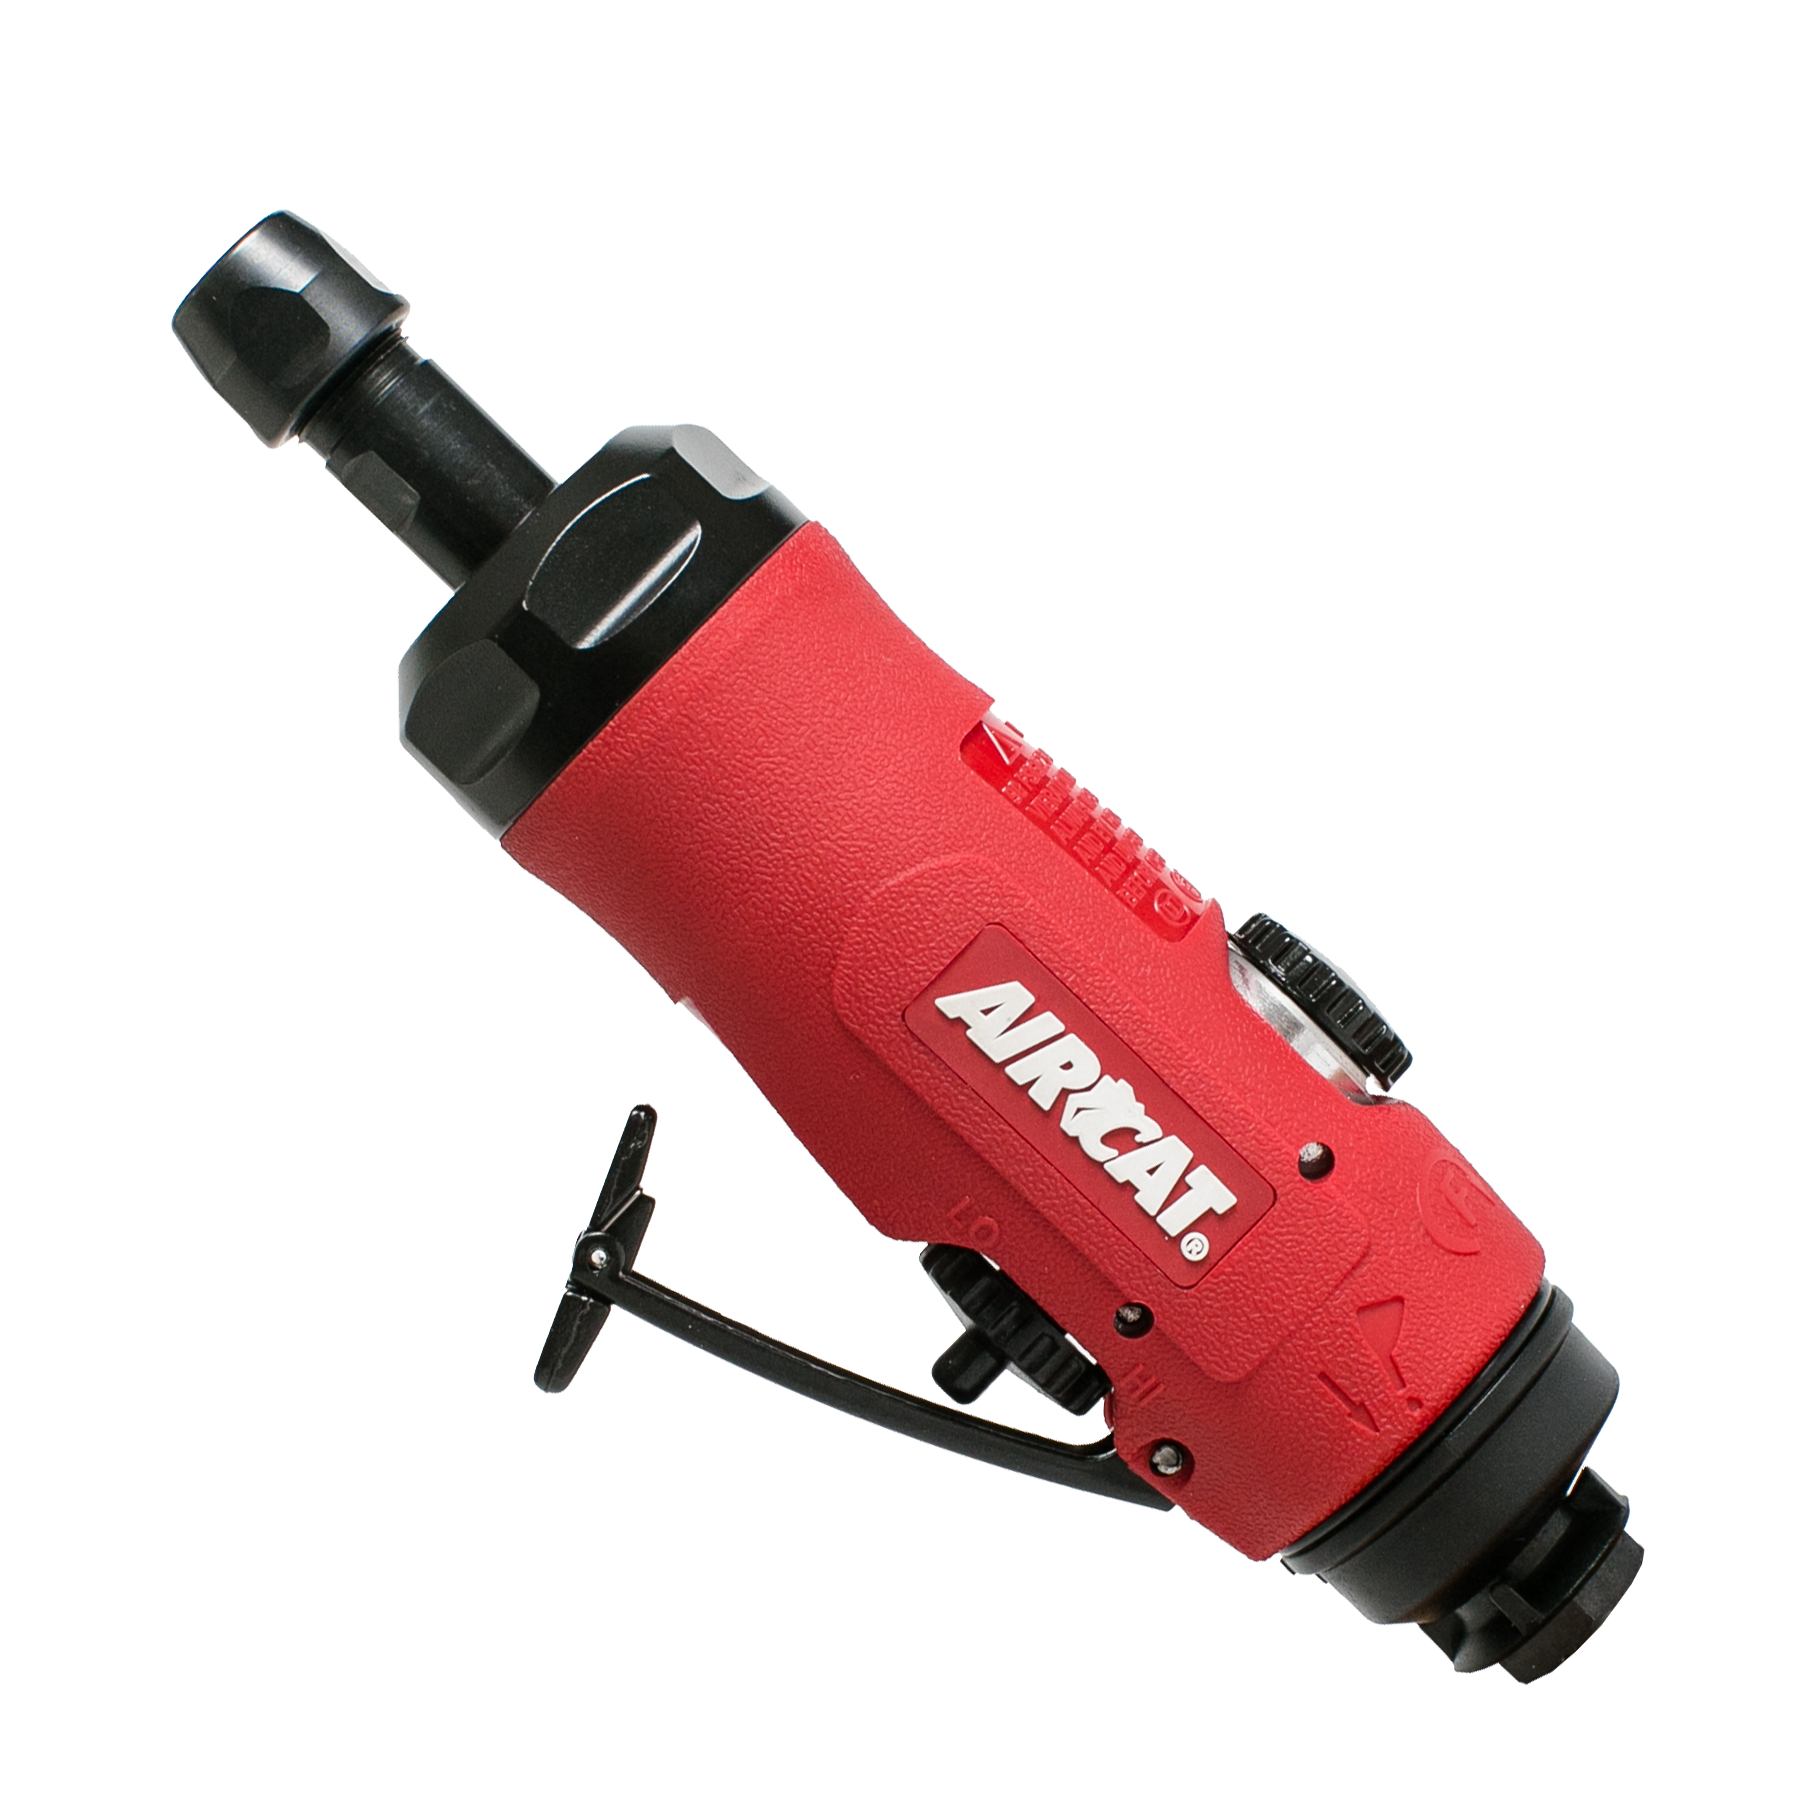 Small Red /& Black AIRCAT 6265 1 hp Composite Angle Die Grinder comes with a 2 /& 3 Back-up Pads